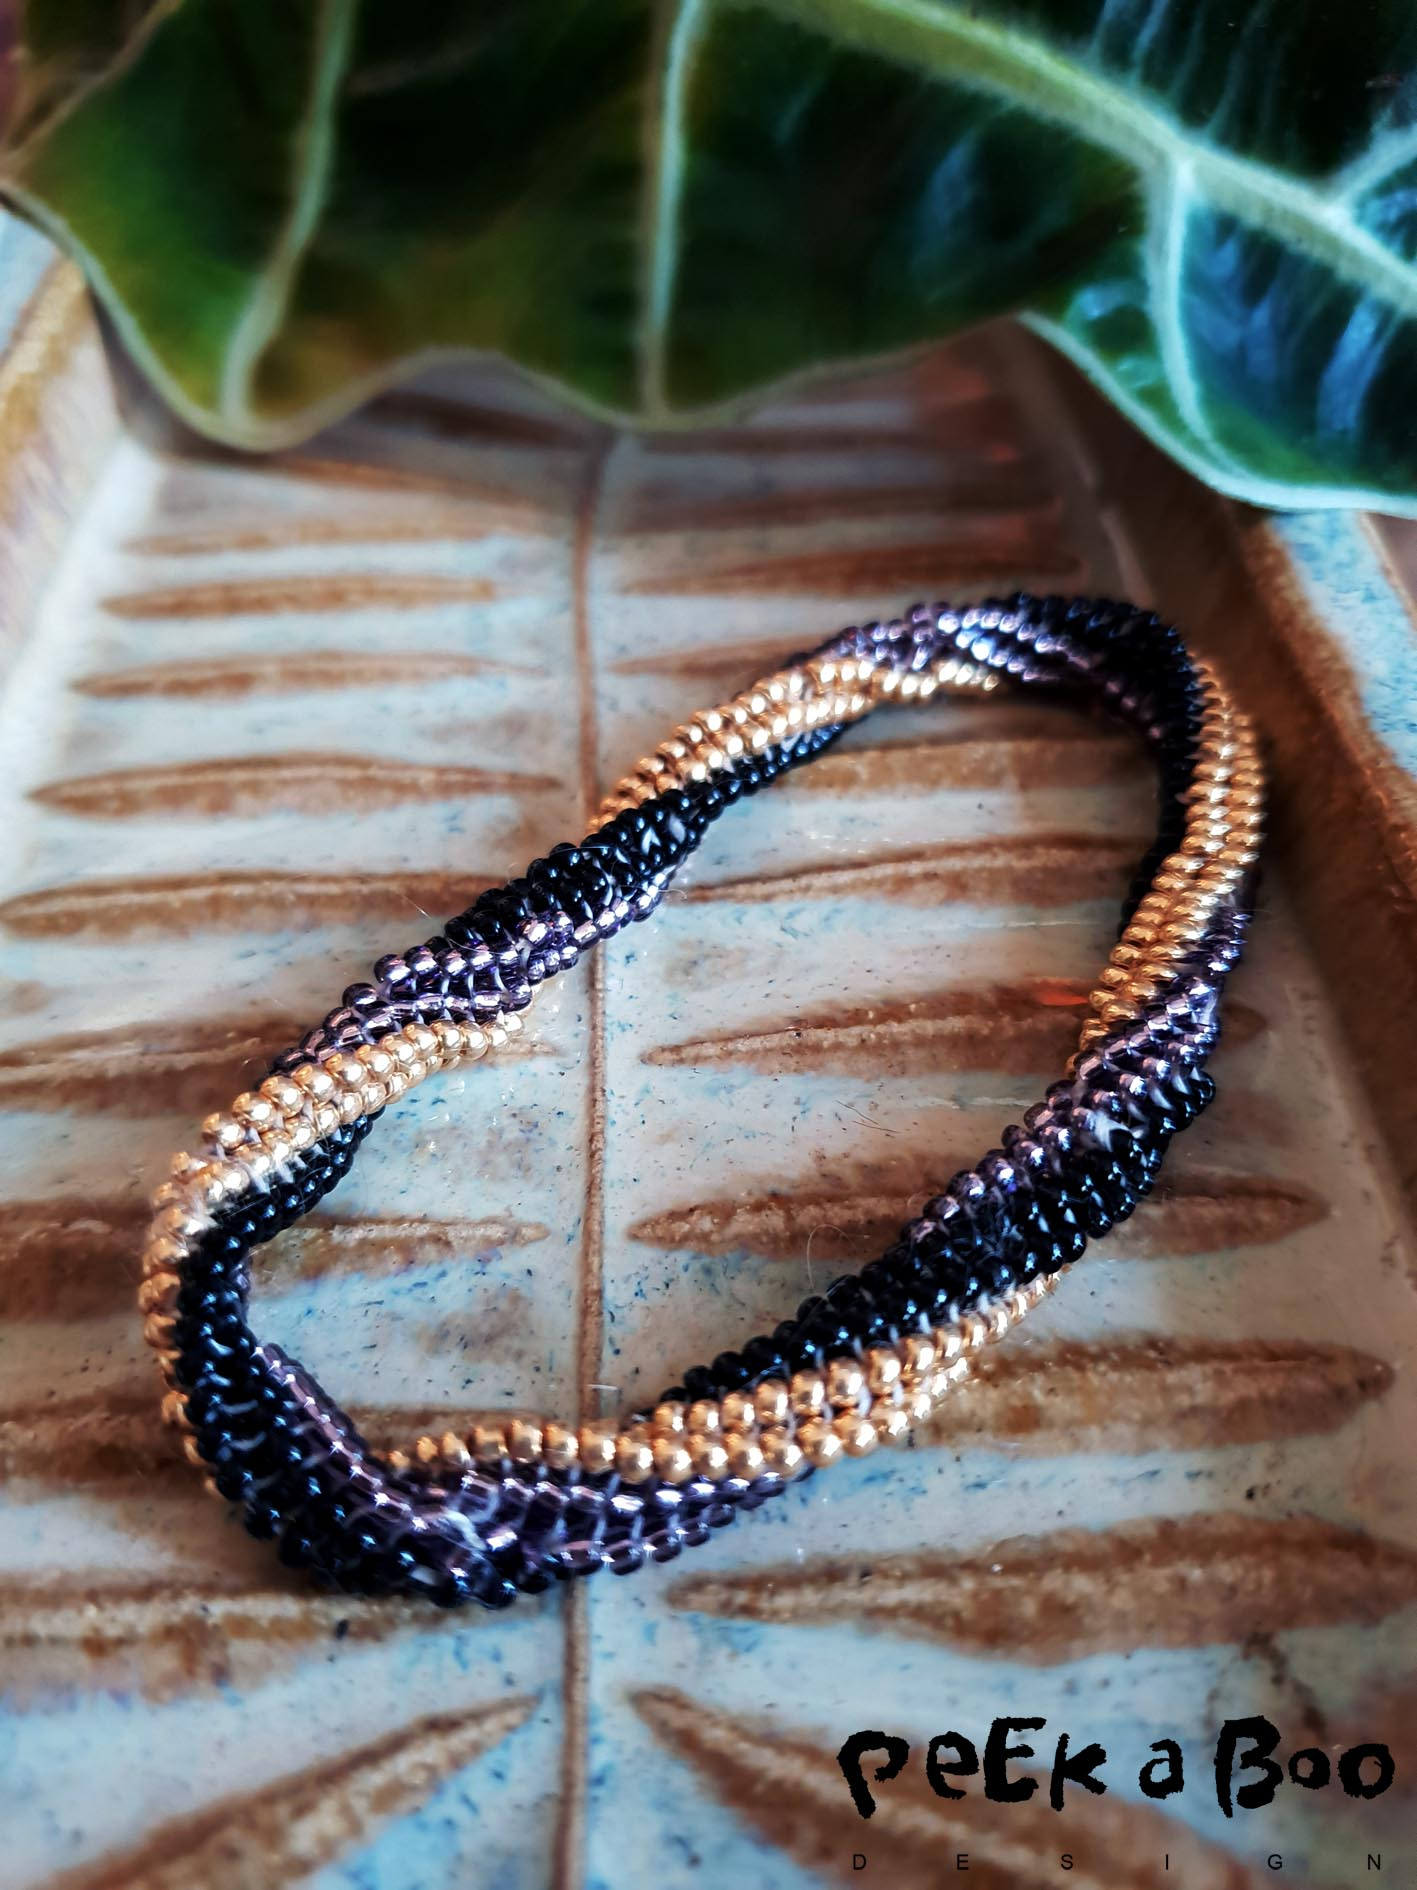 Tubelar twisted bangles... A fashionable DIY project